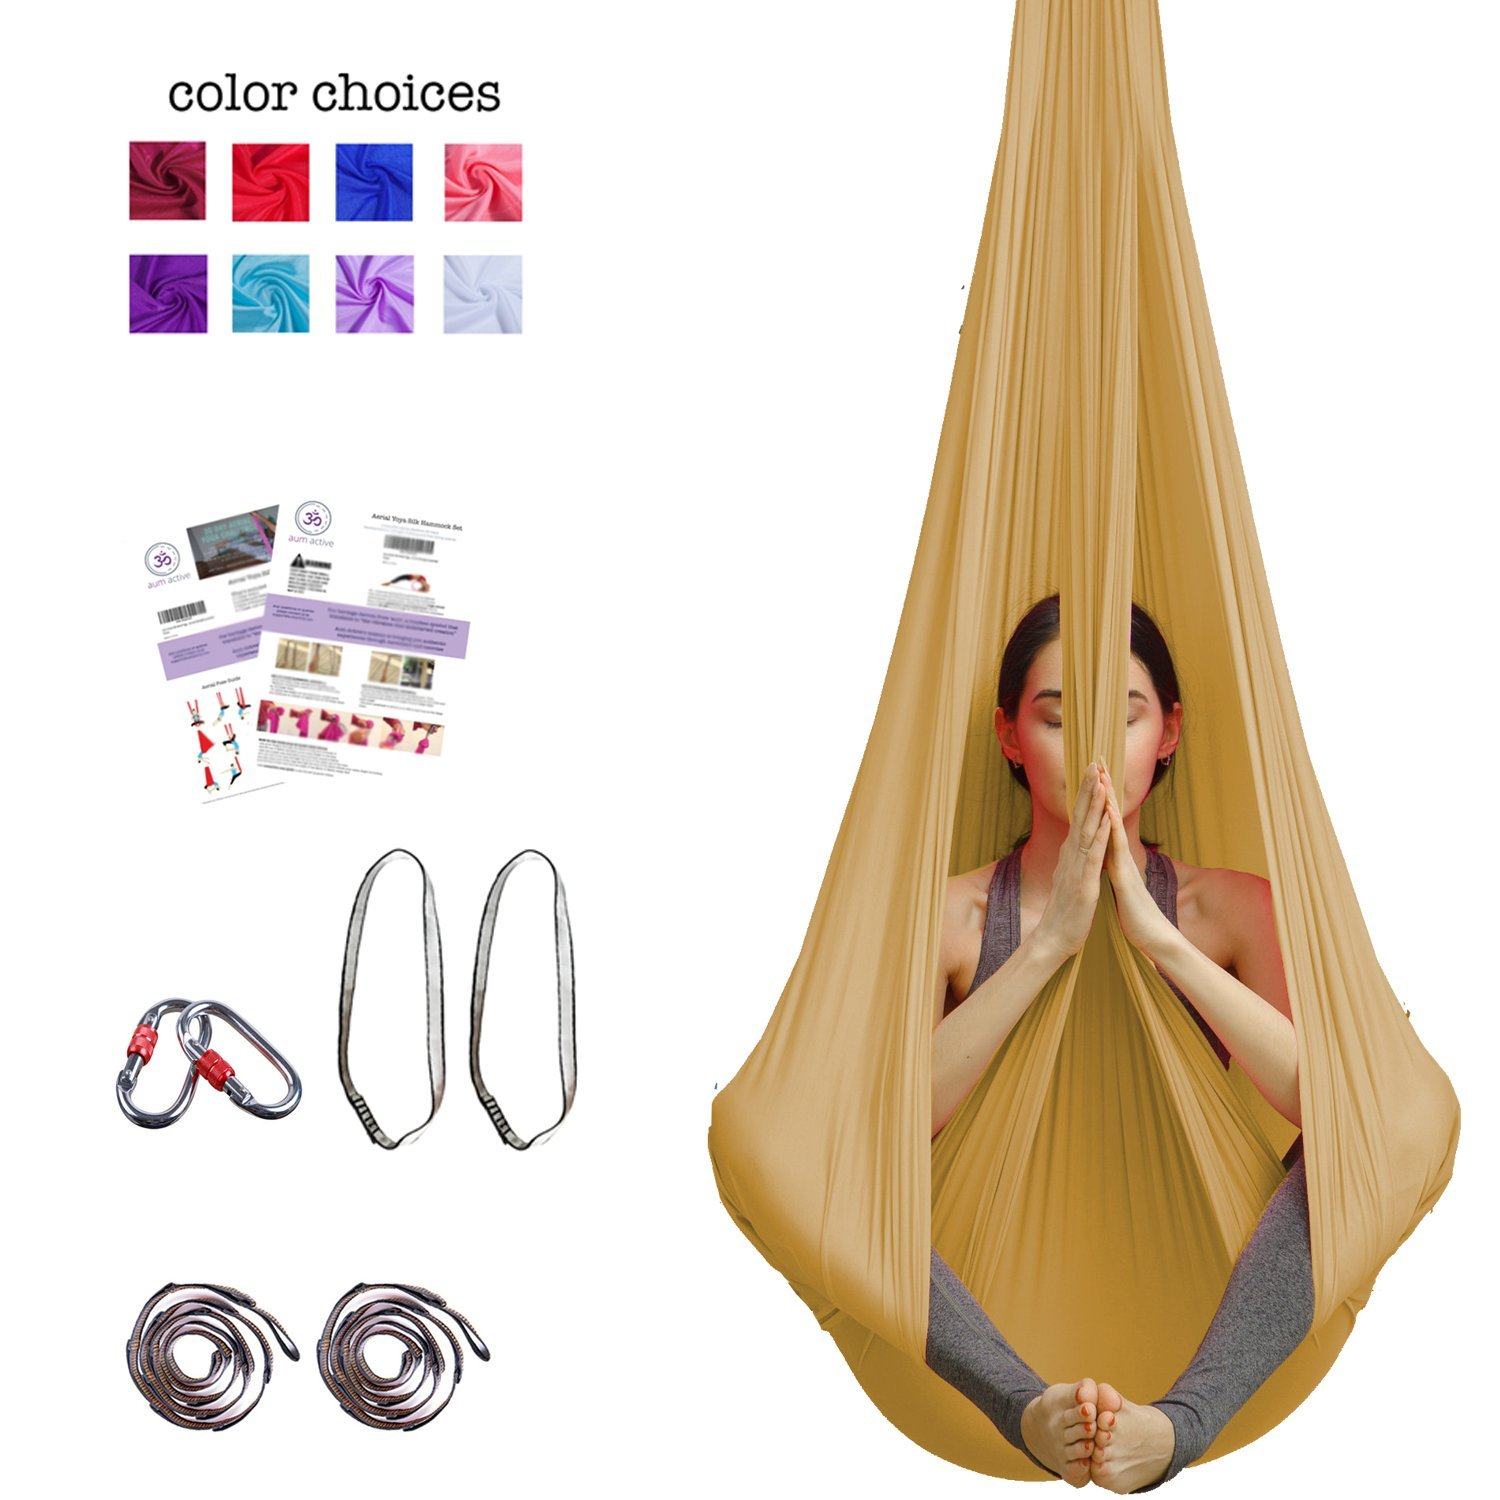 Aum Active Silk Aerial Yoga Swing & Hammock Kit for Improved Yoga Inversions, Flexibility & Core Strength (Gold)